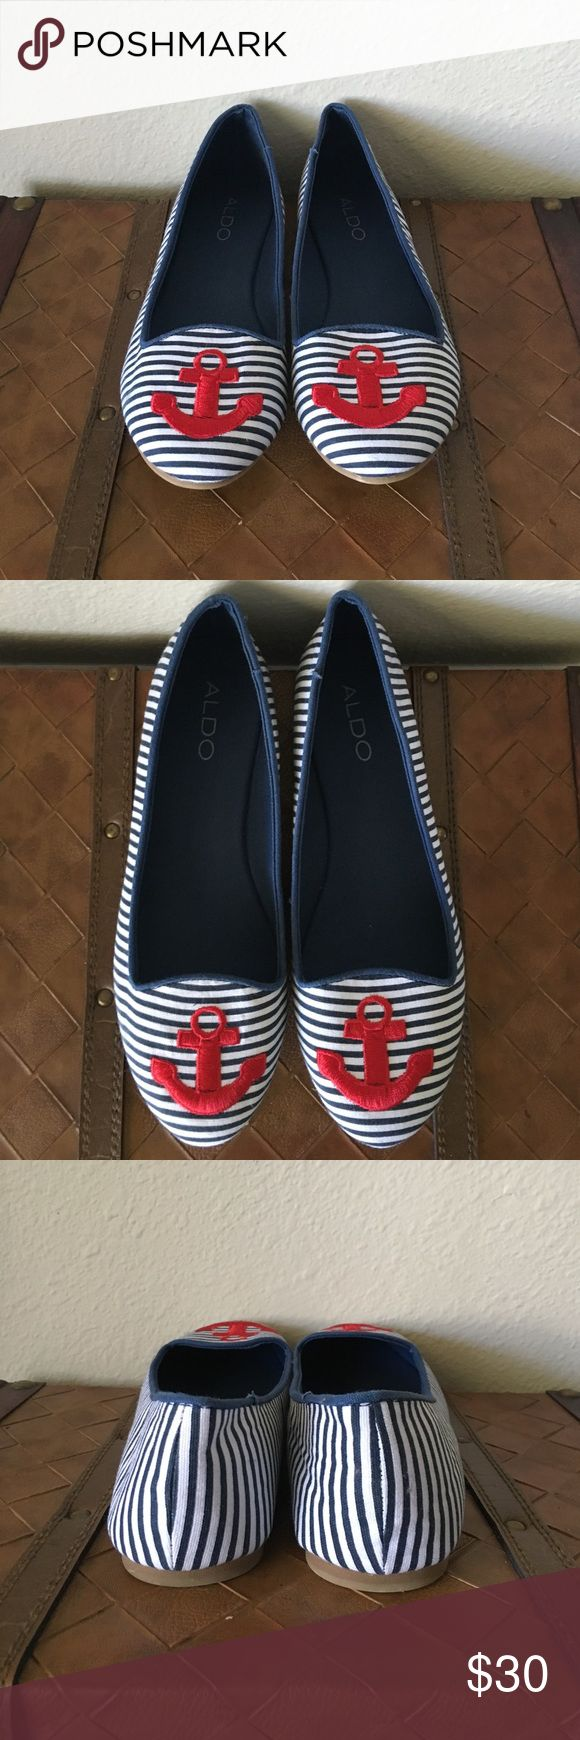 NWT Aldo Nautical Flats Never worn Aldo nautical flats. Purchased for a vacation, but decided to go with another pair. Blue and white striped, with a red anchor at the toe. Size 7.5 Aldo Shoes